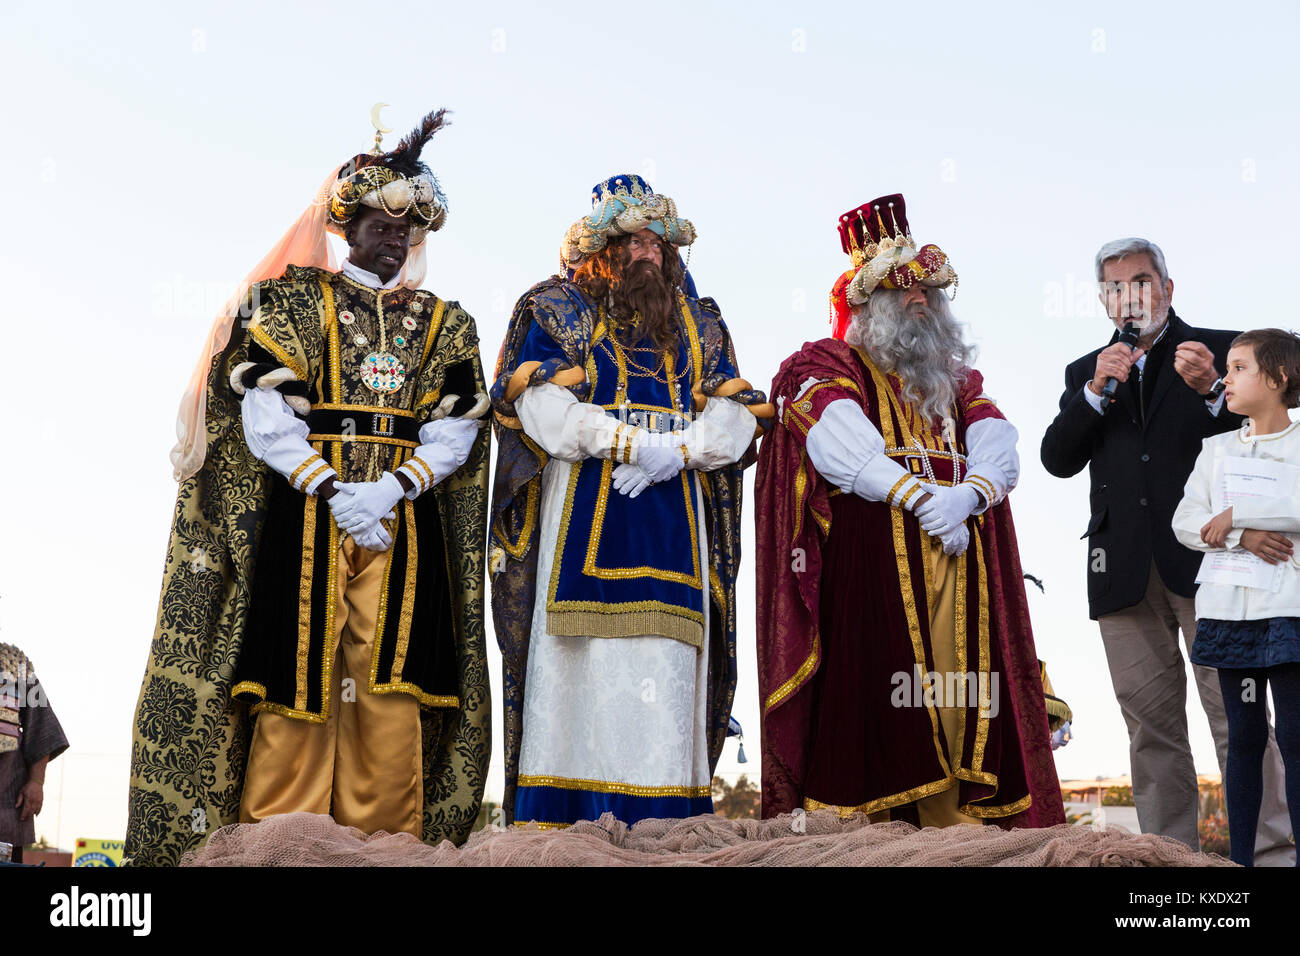 3 Wise Men Stock Photos Amp 3 Wise Men Stock Images Alamy